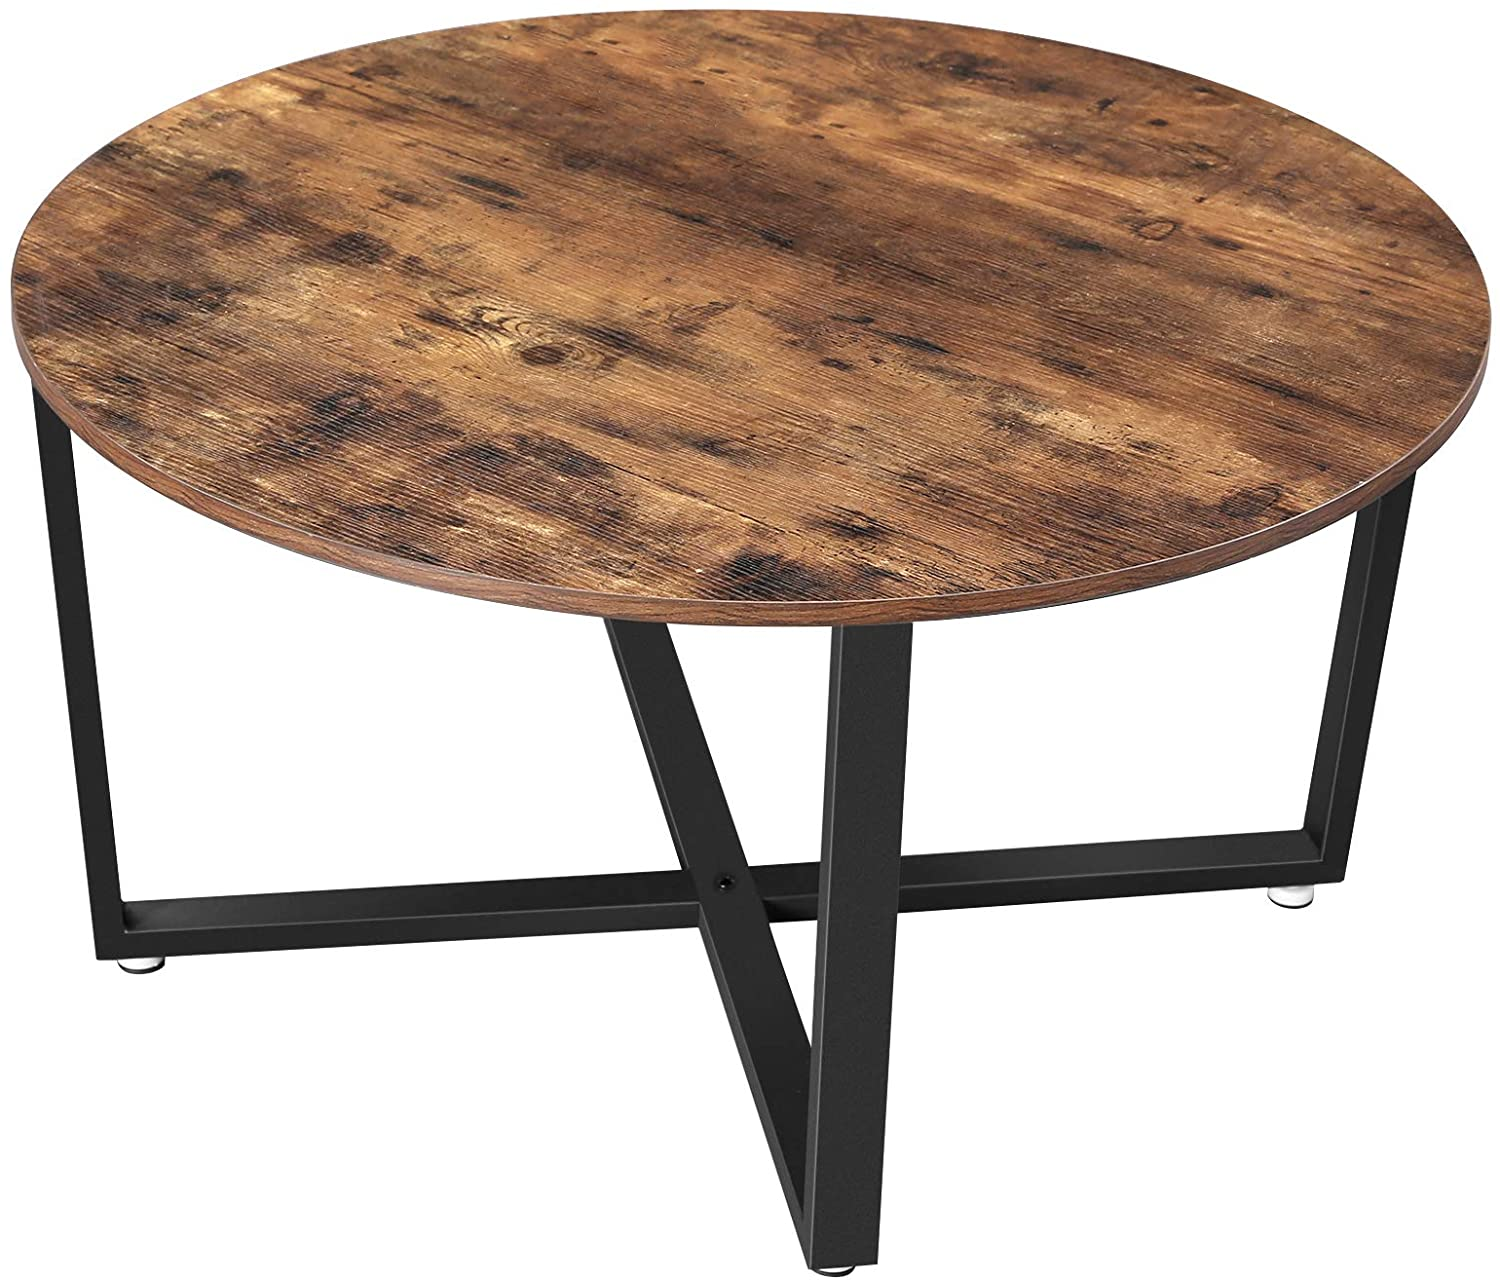 Shop hawkinswoodshop.com for solid wood & metal modern, traditional, contemporary, industrial, custom, rustic, and farmhouse furniture including our Ryan Round Coffee Table Industrial Farmhouse Style.  Ask about our free nationwide delivery service.